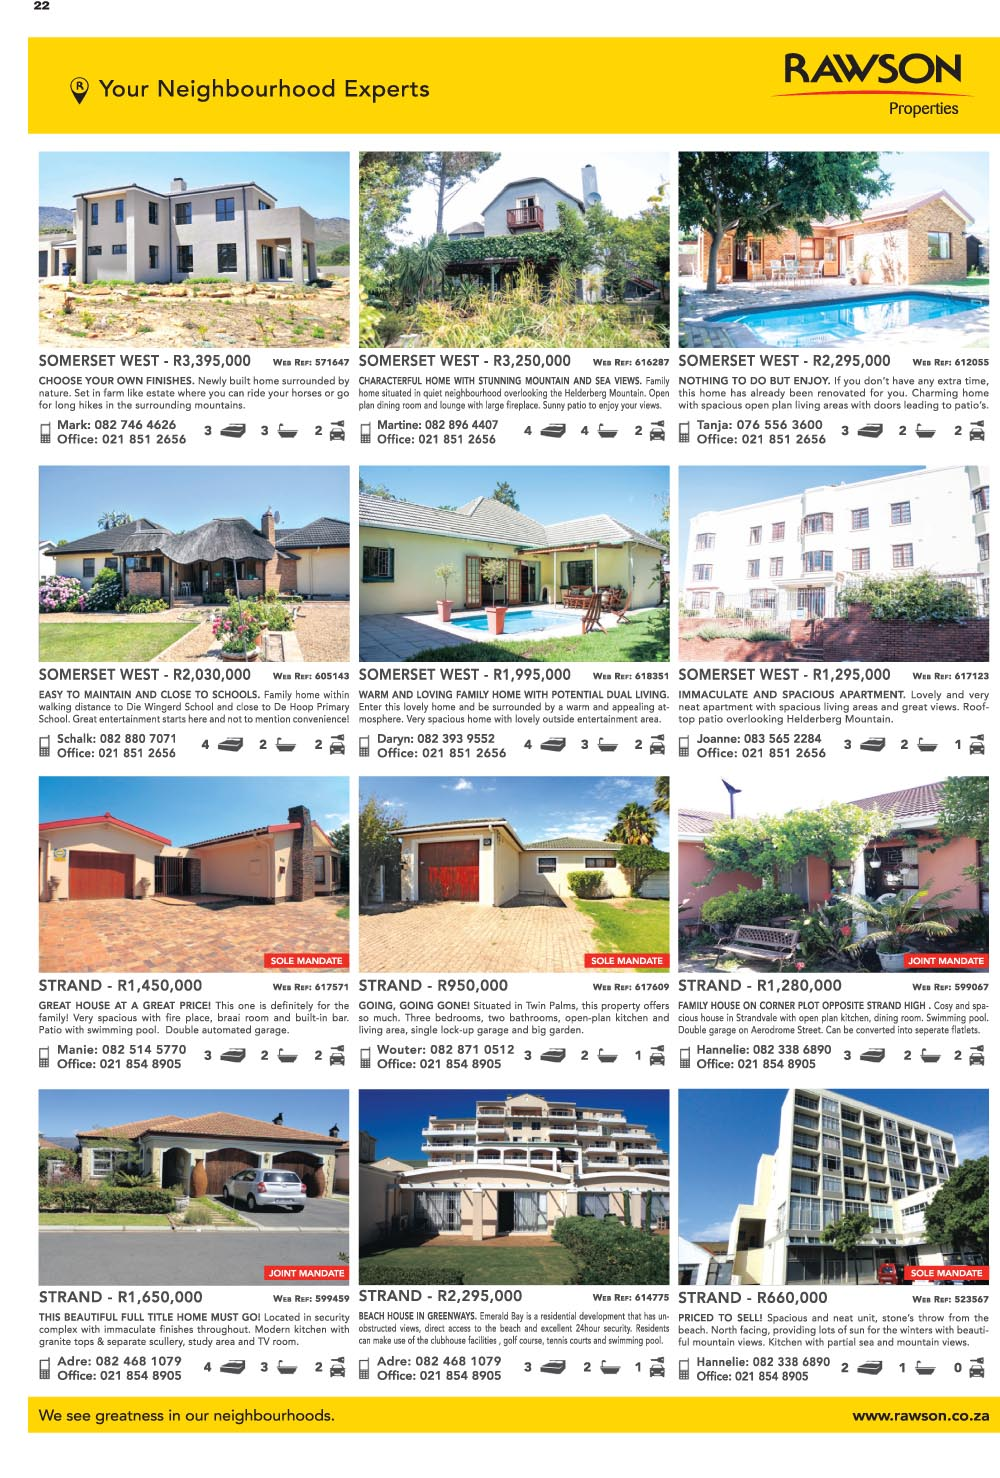 You are browsing images from the article: Property Selection February 25 2015